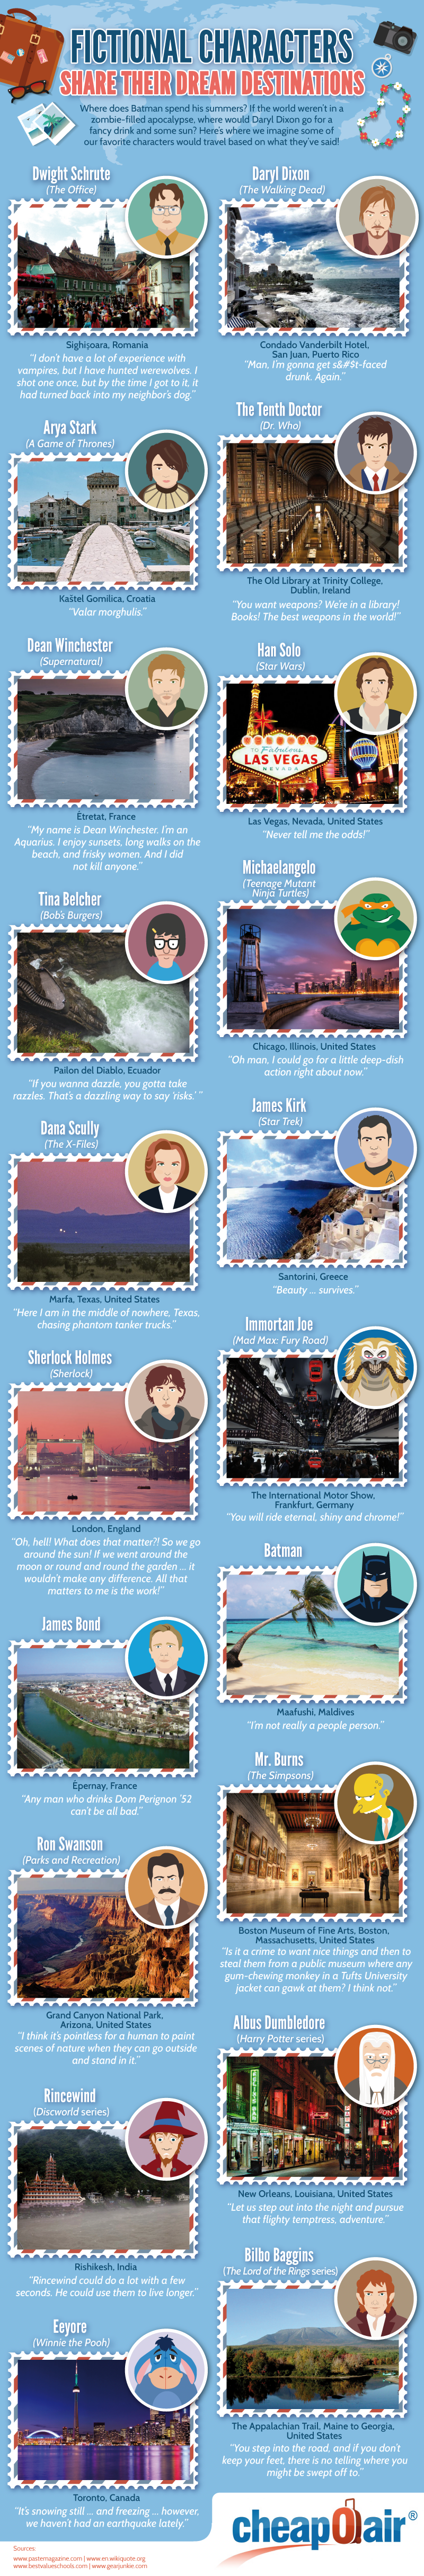 Fictional Characters Share Their Dream Destinations - CheapOAir.com - Infographic